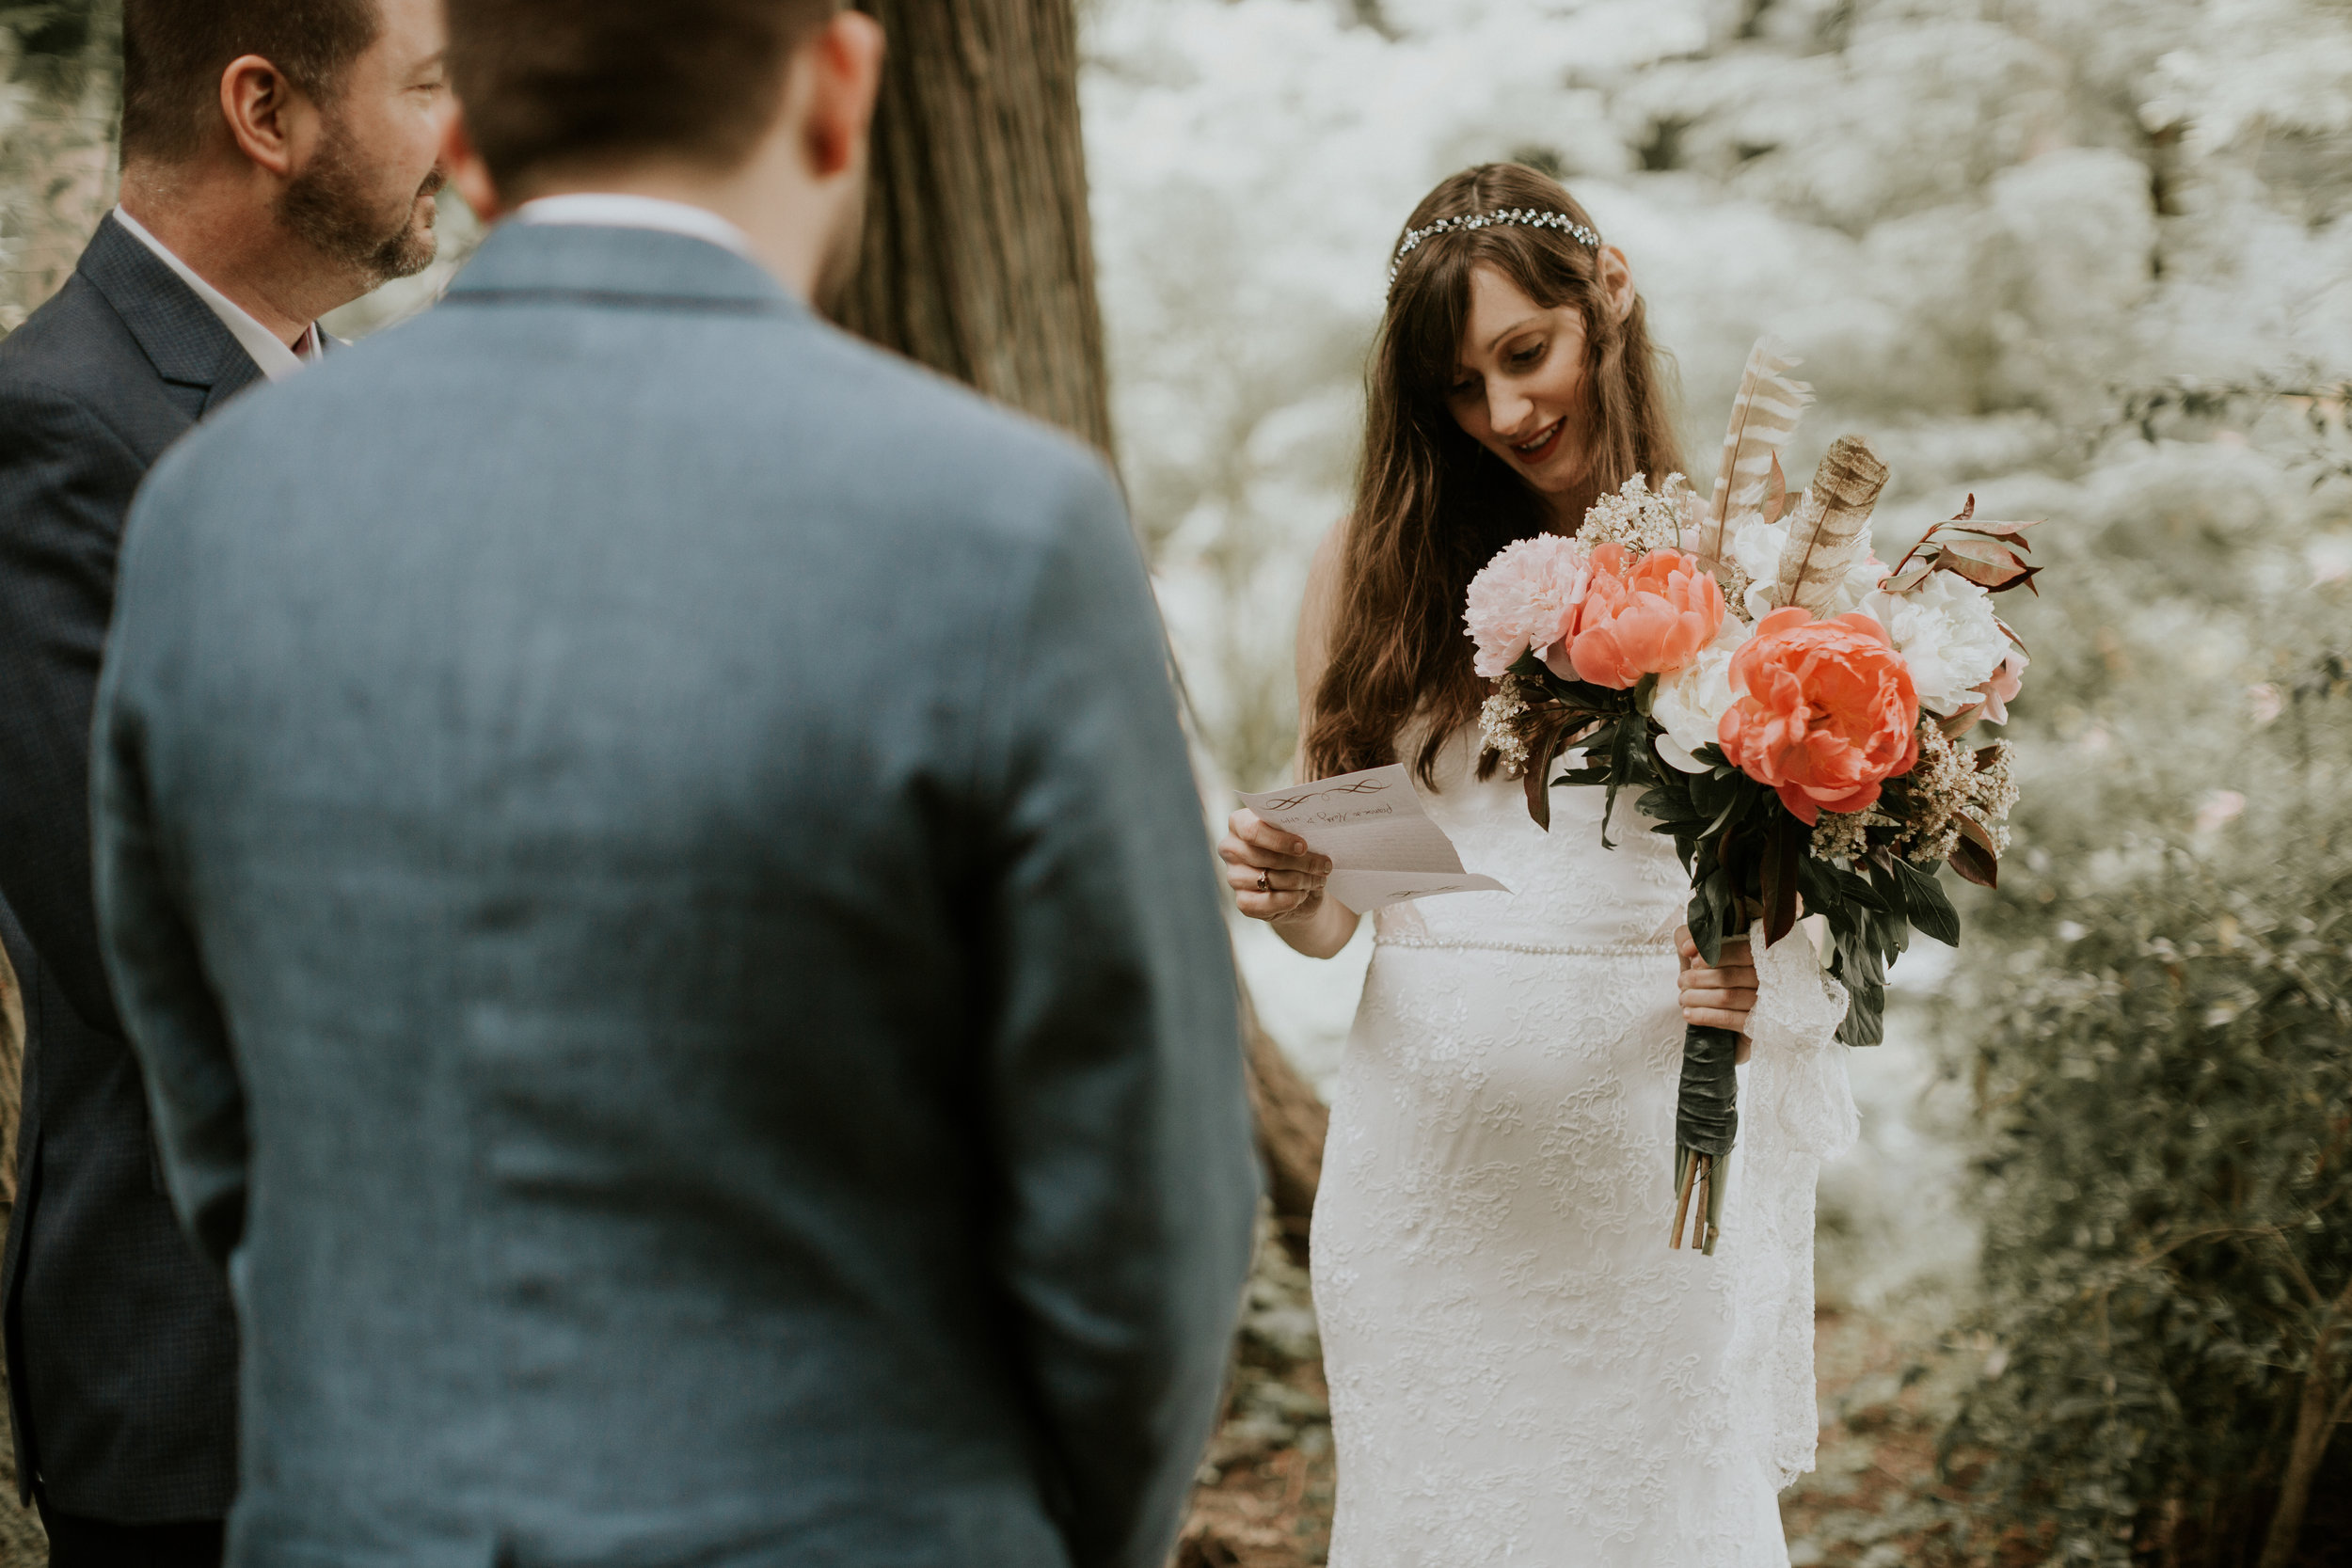 PNW-elopement-wedding-engagement-olympic national park-port angeles-hurricane ridge-lake crescent-kayla dawn photography- photographer-photography-kayladawnphoto-45.jpg